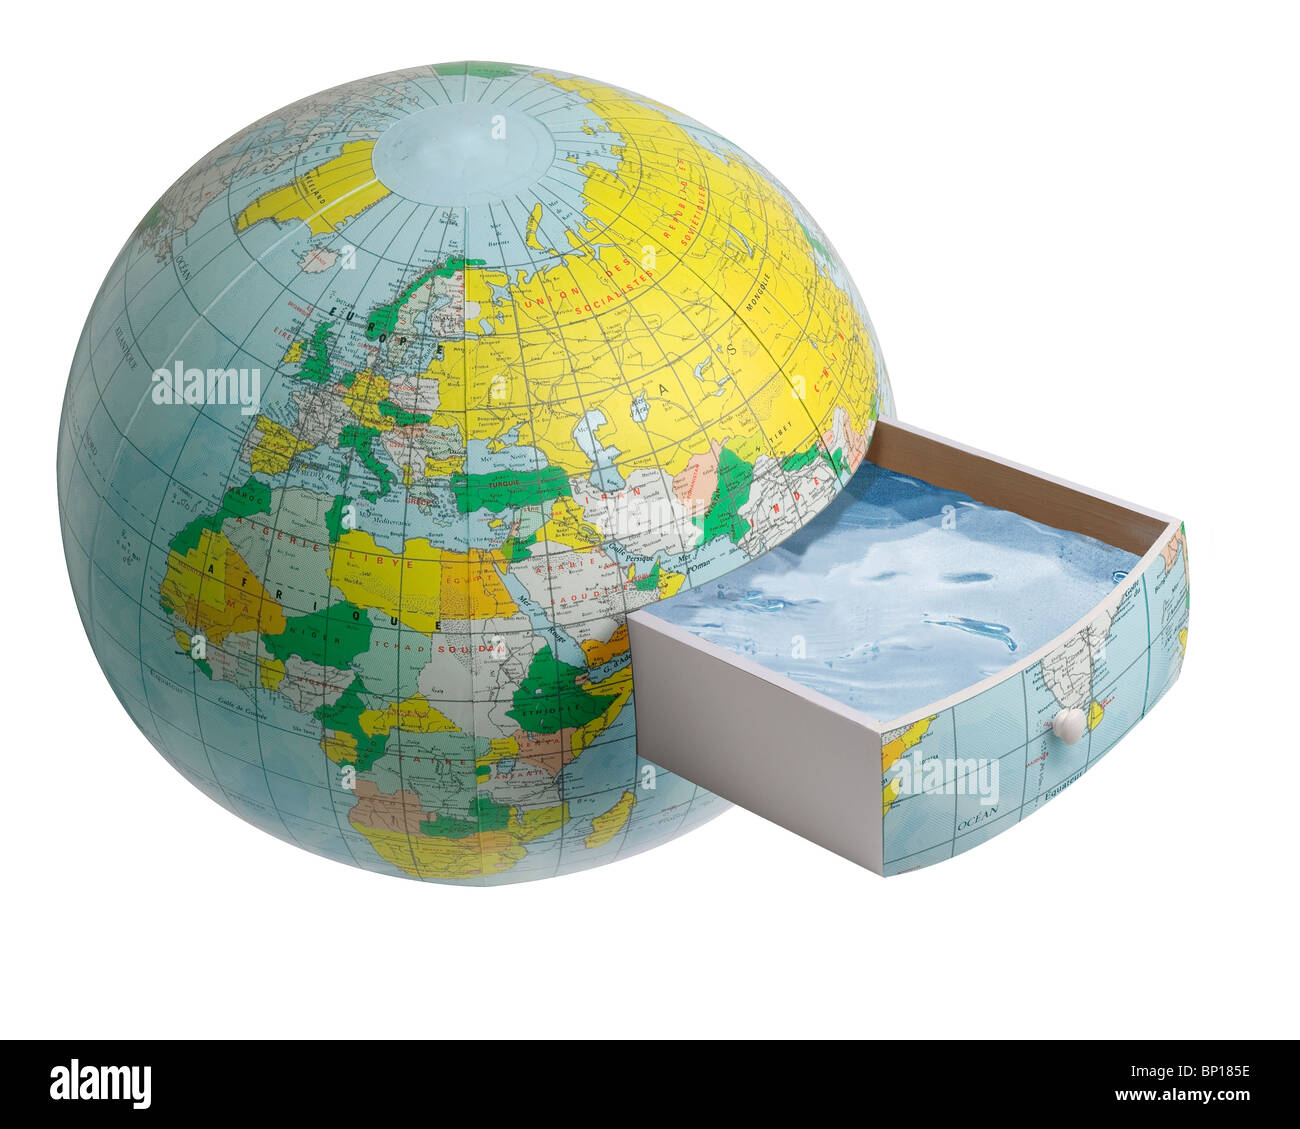 Globe with drawer filled with water - Stock Image